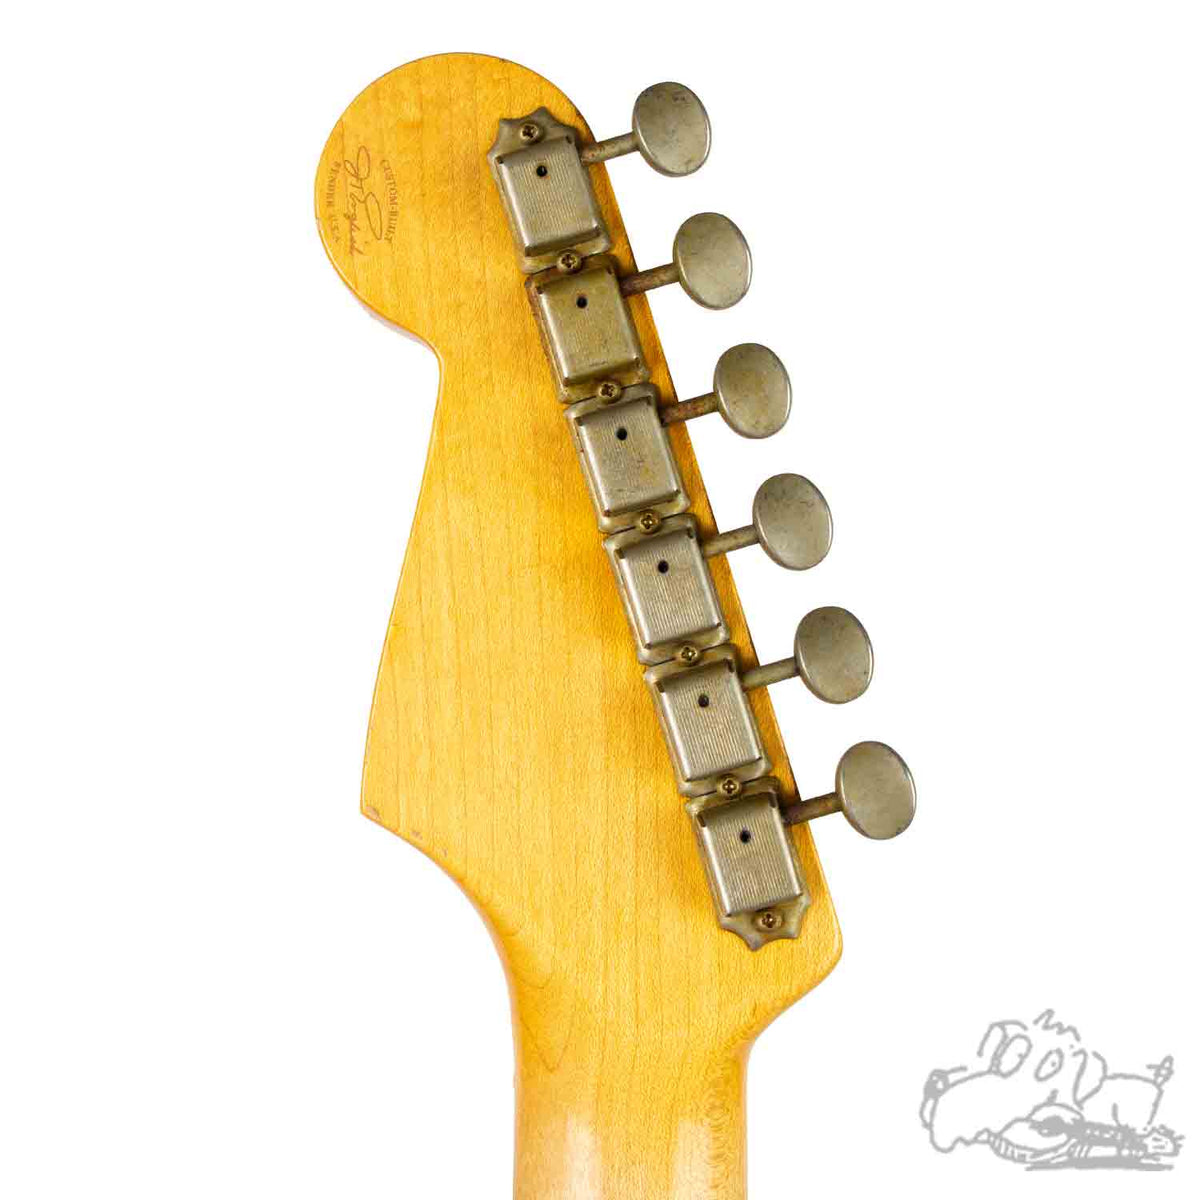 2005 Fender Custom Shop John English Masterbuilt '59 Relic Stratocaster with Abby Pickups!